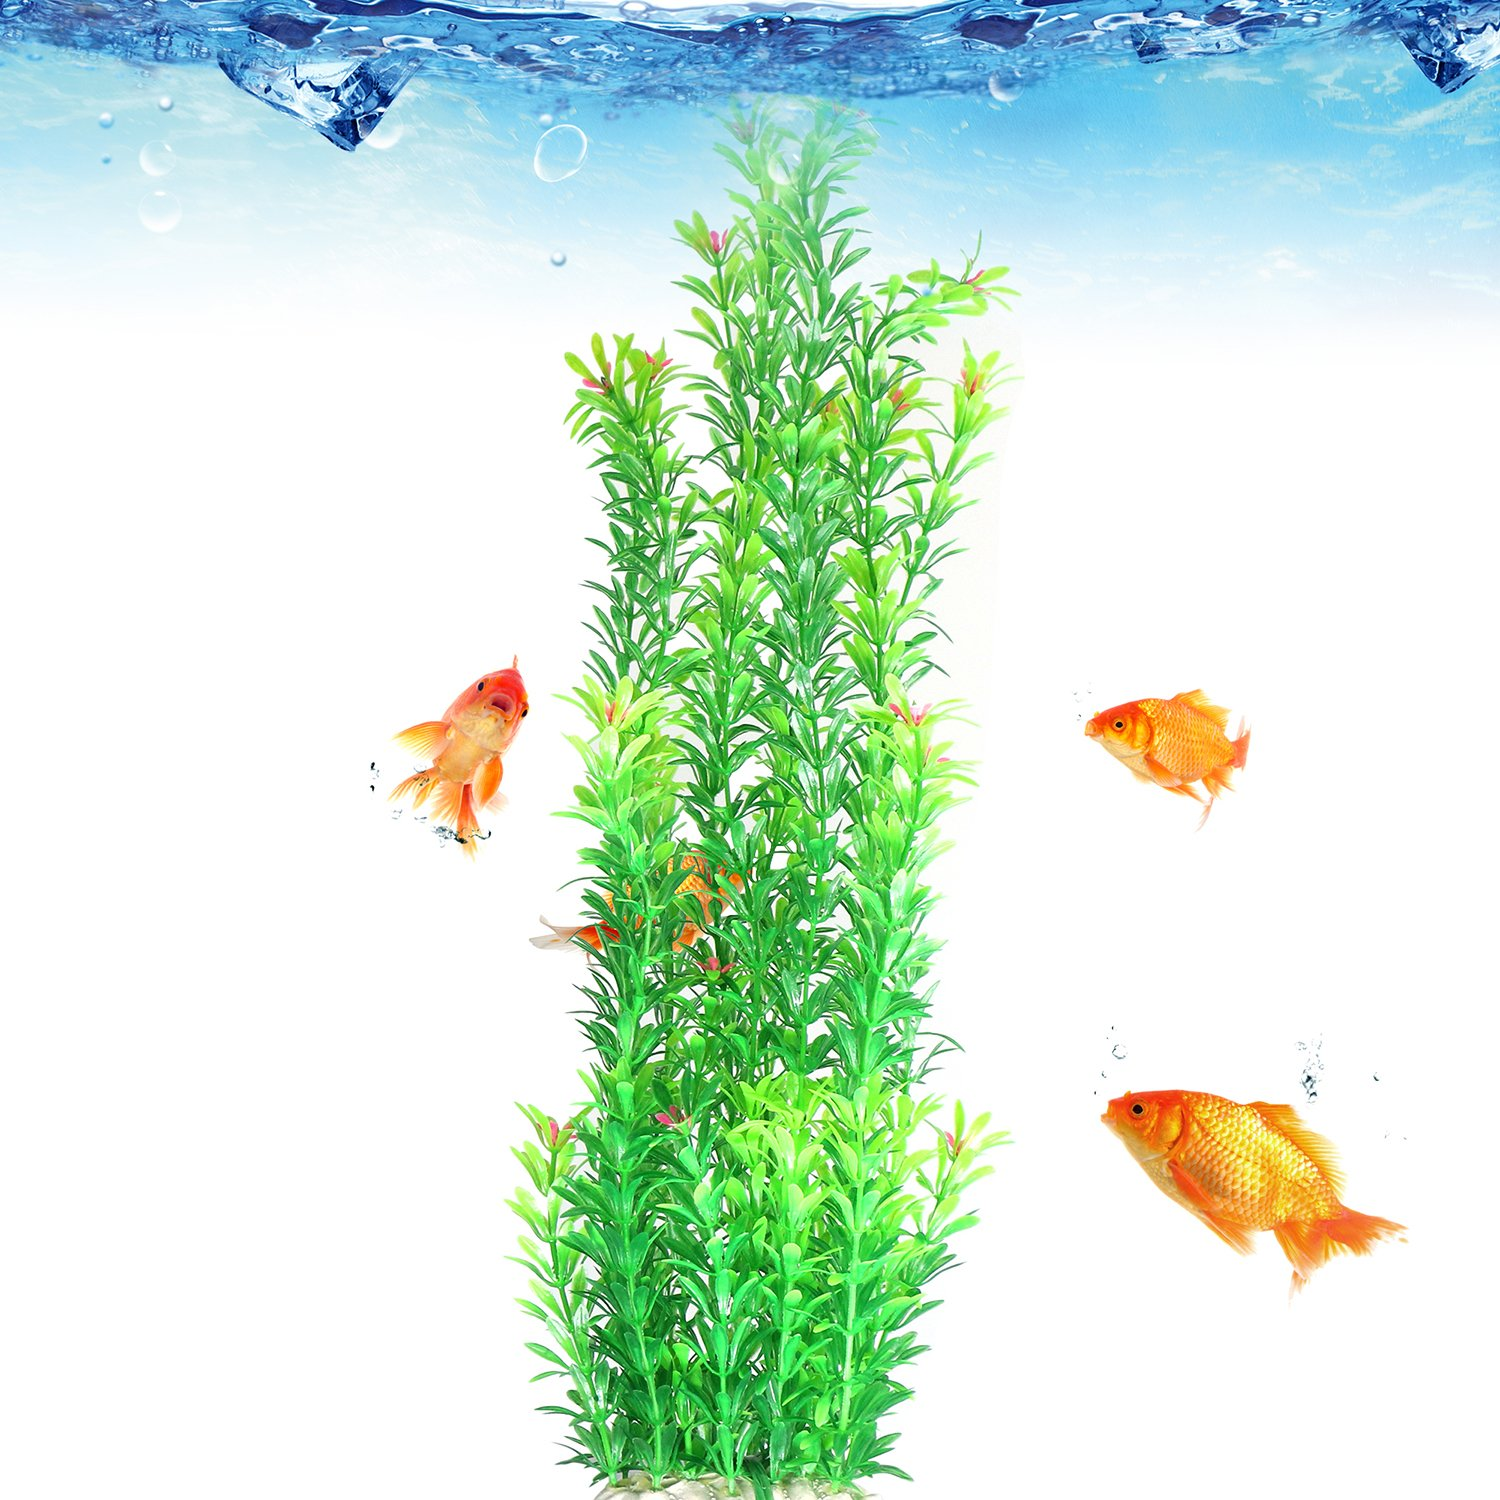 Amazon.com : Tacobear Artificial Plastic Plant Green Aquarium Fish ...